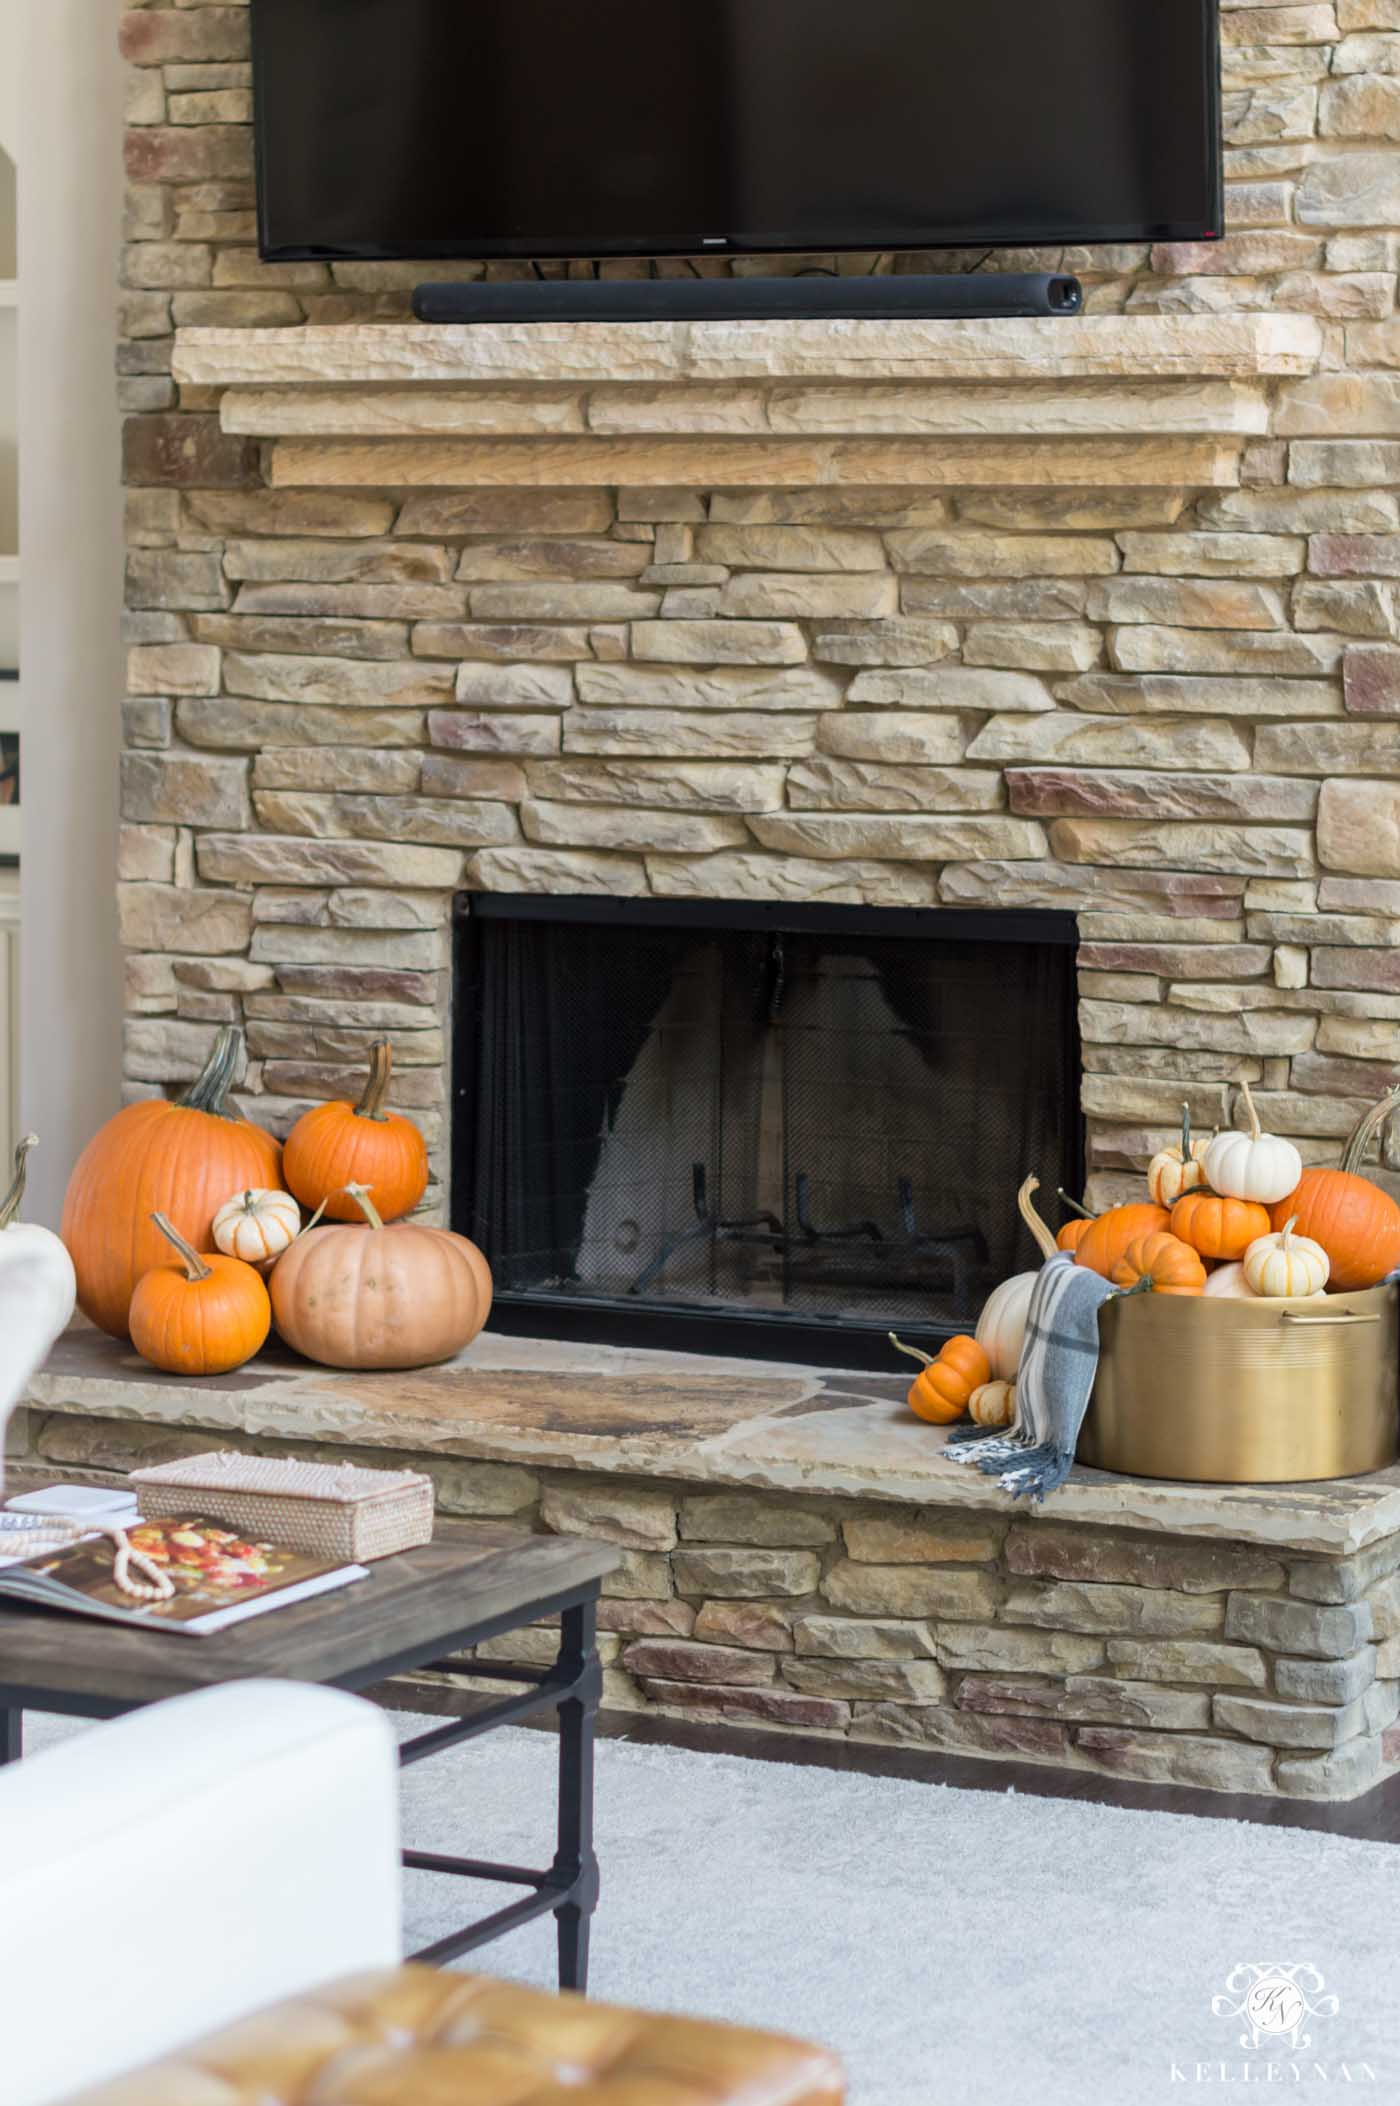 Fall fireplace decorating ideas with pumpkins